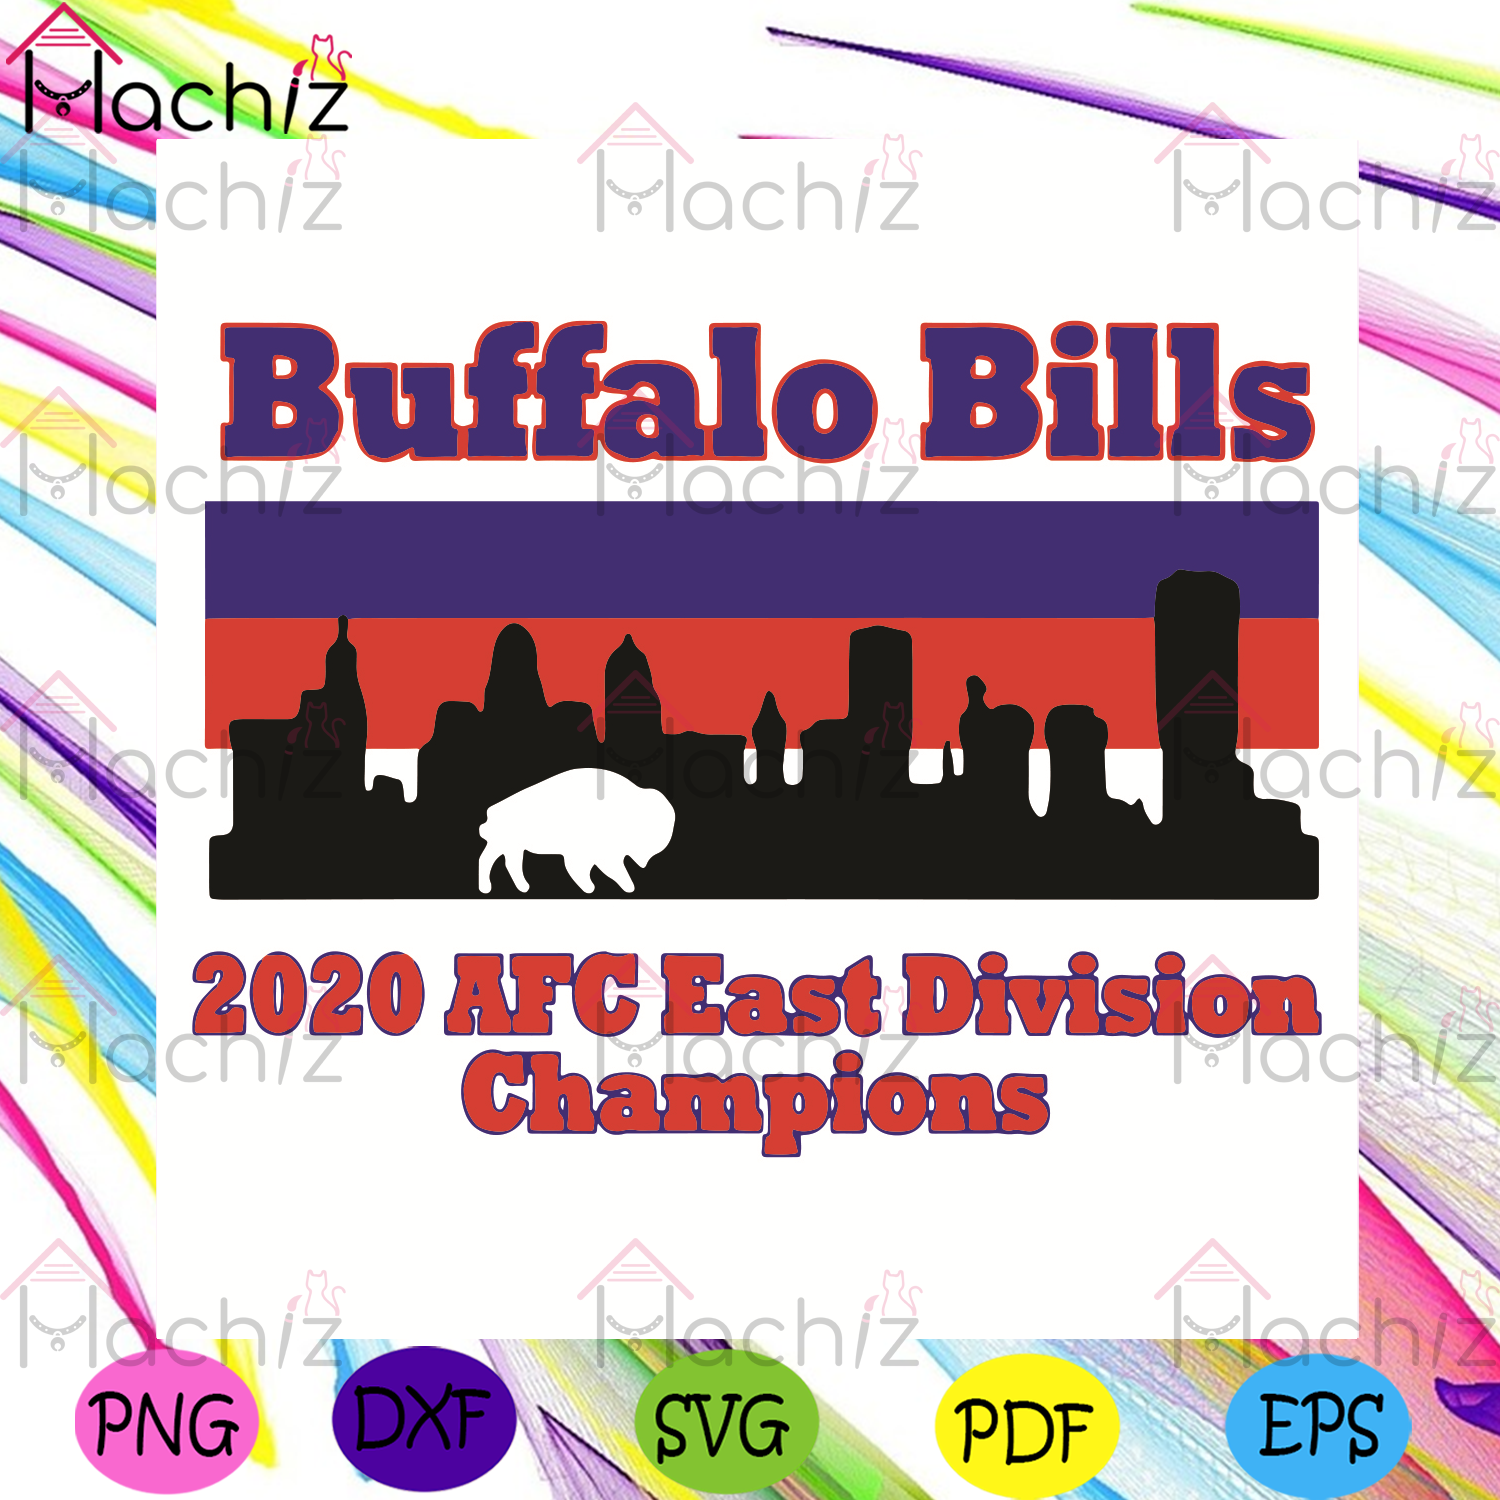 Buffalo Bills 2020 AFC East Division Champions Svg, Sport Svg, Buffalo Bills Football Team Svg, Buffalo Bills Svg, Buffalo Bills Gifts Svg, 2020 AFC East Svg, Buffalo Bills Fans Svg, Buffalo Bills Lovers Svg, Football Svg, Champion Svg, Nfl Svg